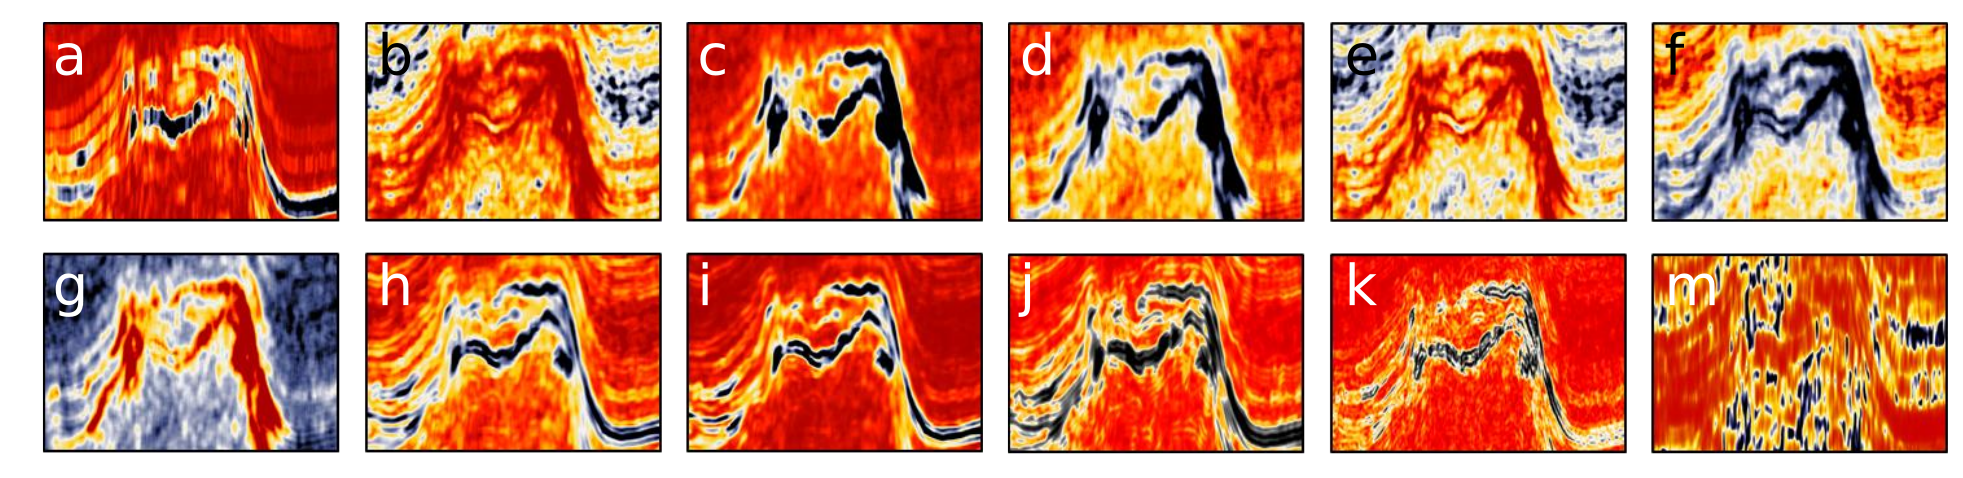 Twelve Seismic attributes used for multi-attribute salt-boundary classification. (a) is RMS Amplitude, (B) to (M) are TEXTURAL attributes. See  abstract  for details. This figure is copyright of Ghassan AlRegib and licensed CC-BY-SA by virtue of being generated from the F3 dataset of dGB and TNO.